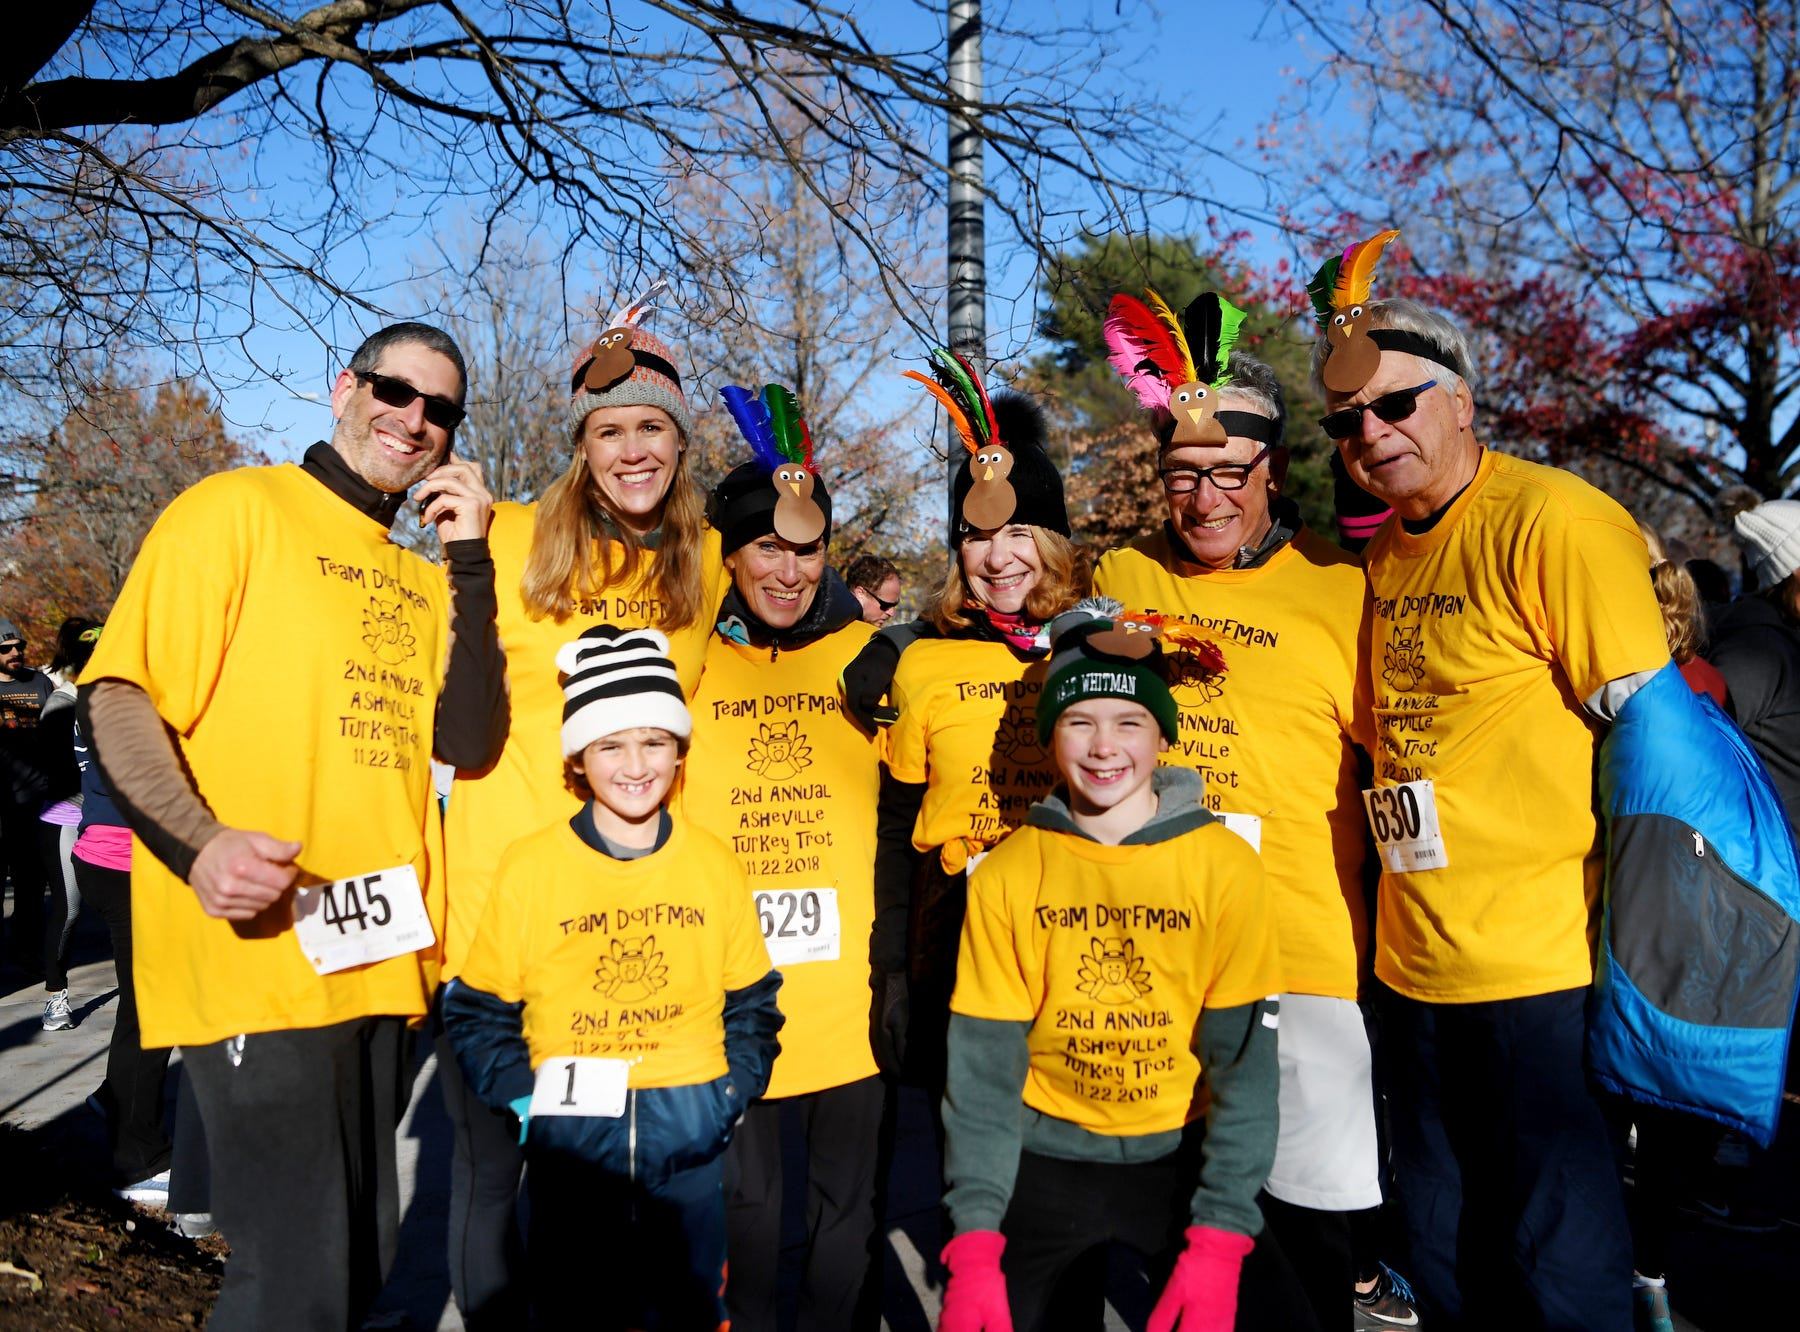 About 2,200 runners participated in the 18th annual Turkey Trot 5K in Asheville on Thanksgiving Day, No. 22, 2018.